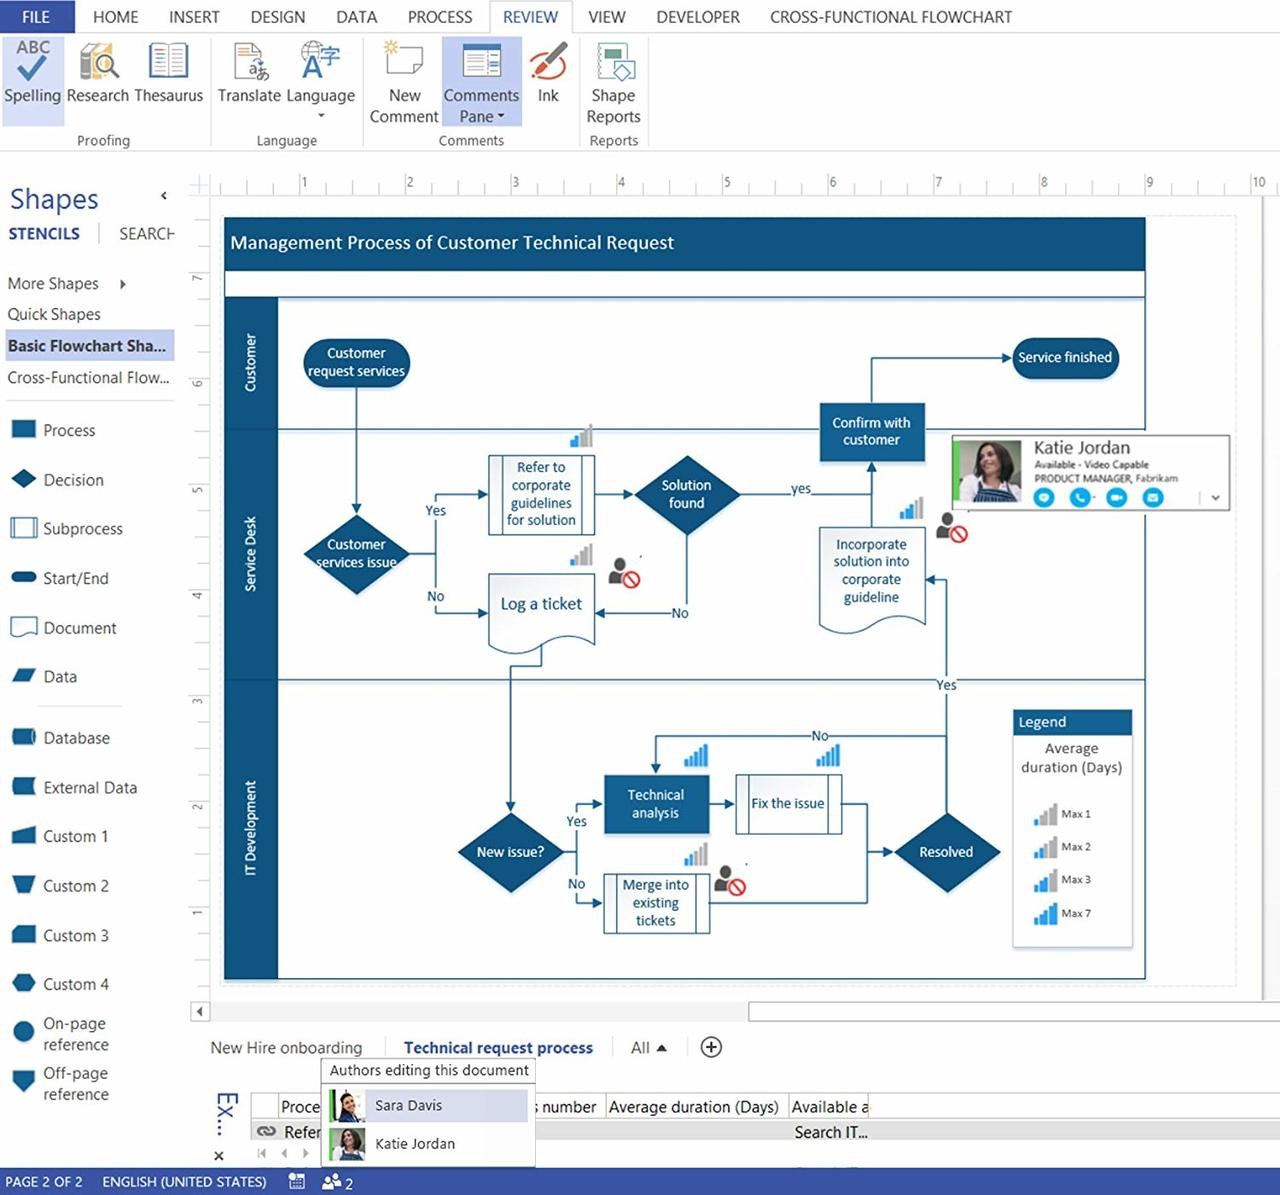 visio software free download for windows 7 64 bit